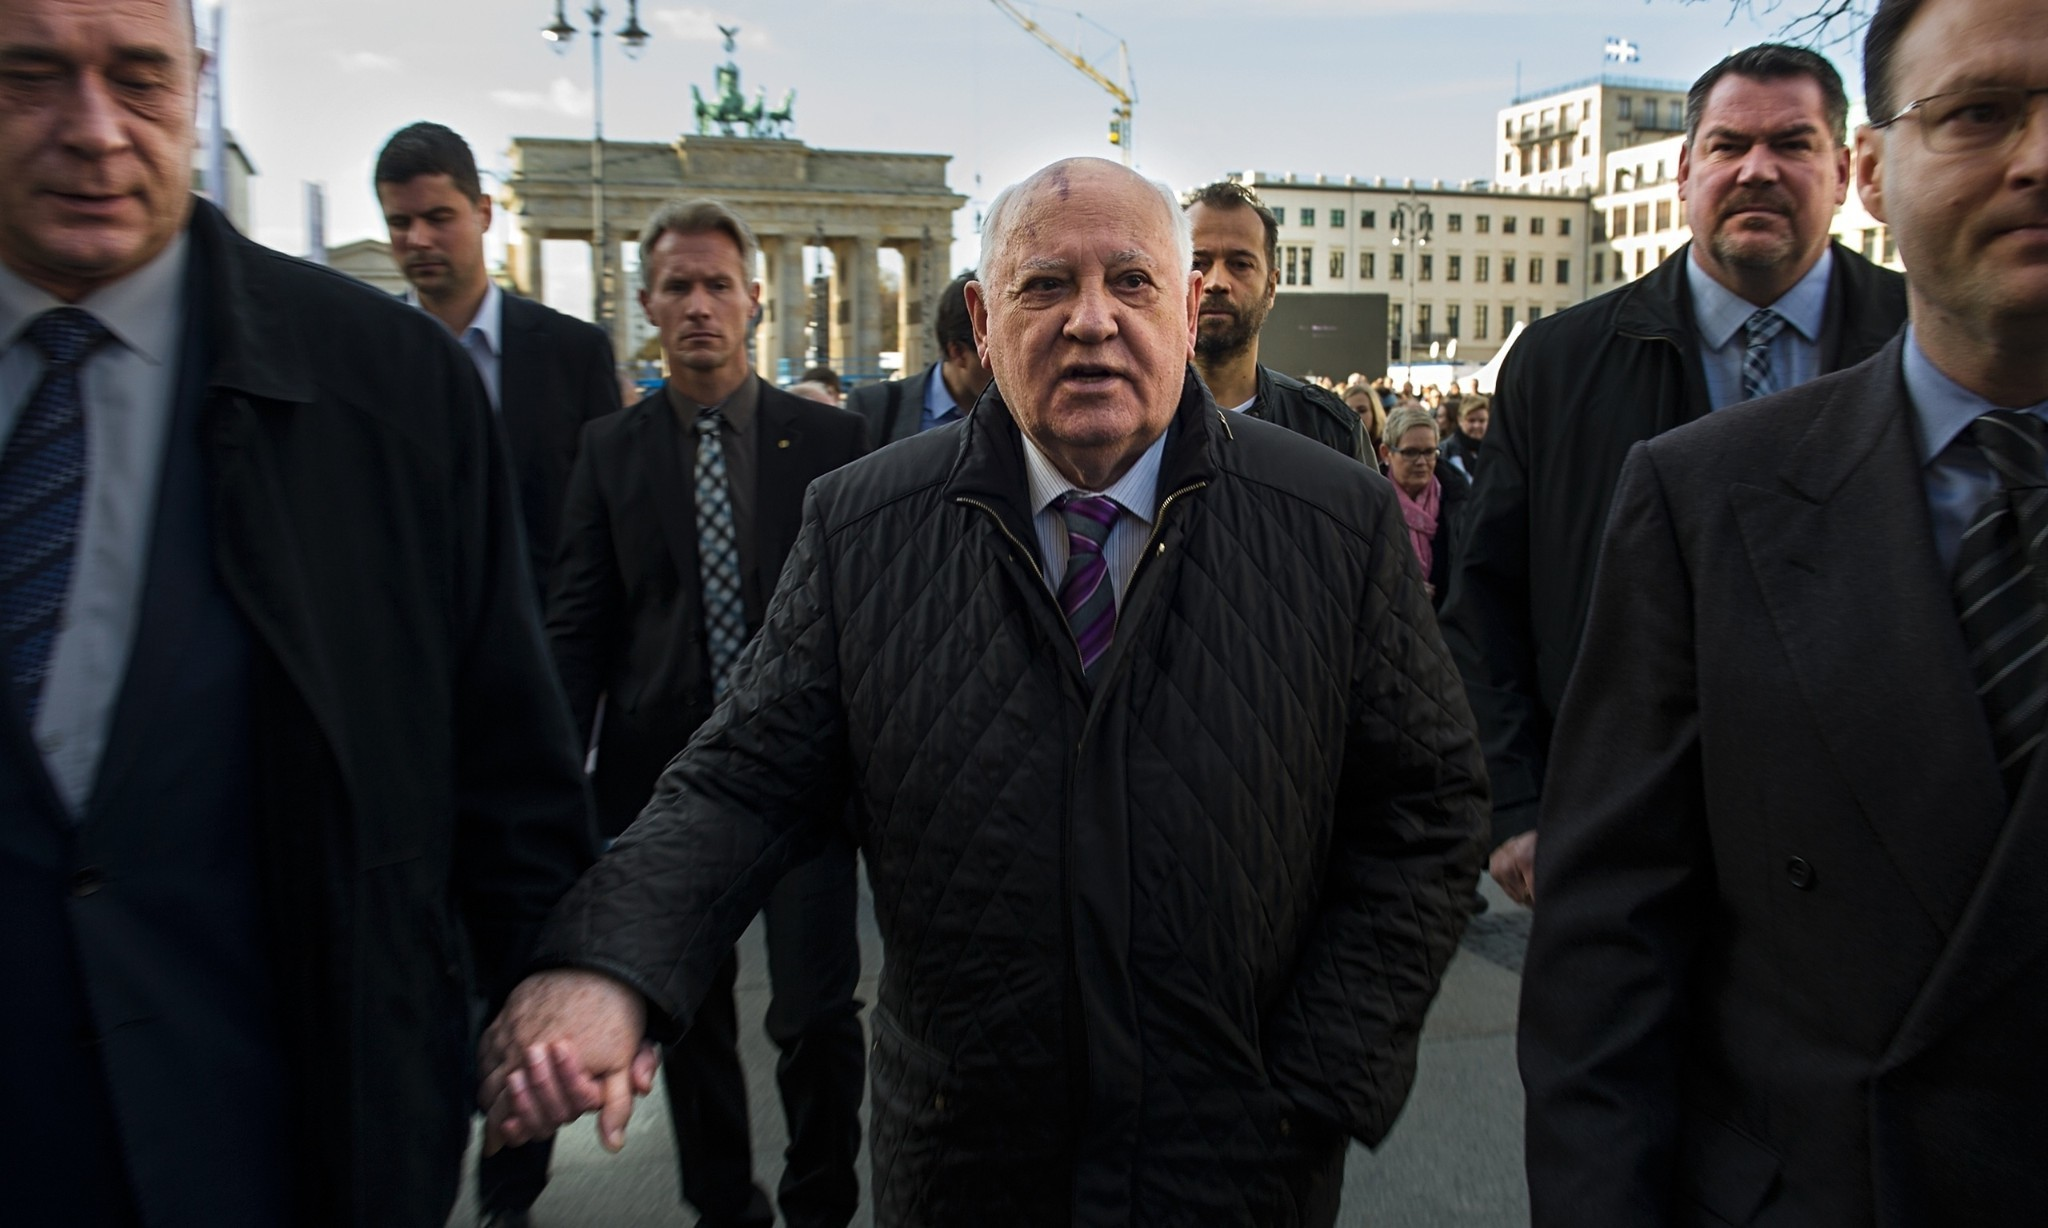 Gorbachev warns of new cold war threat as Berlin marks fall of wall